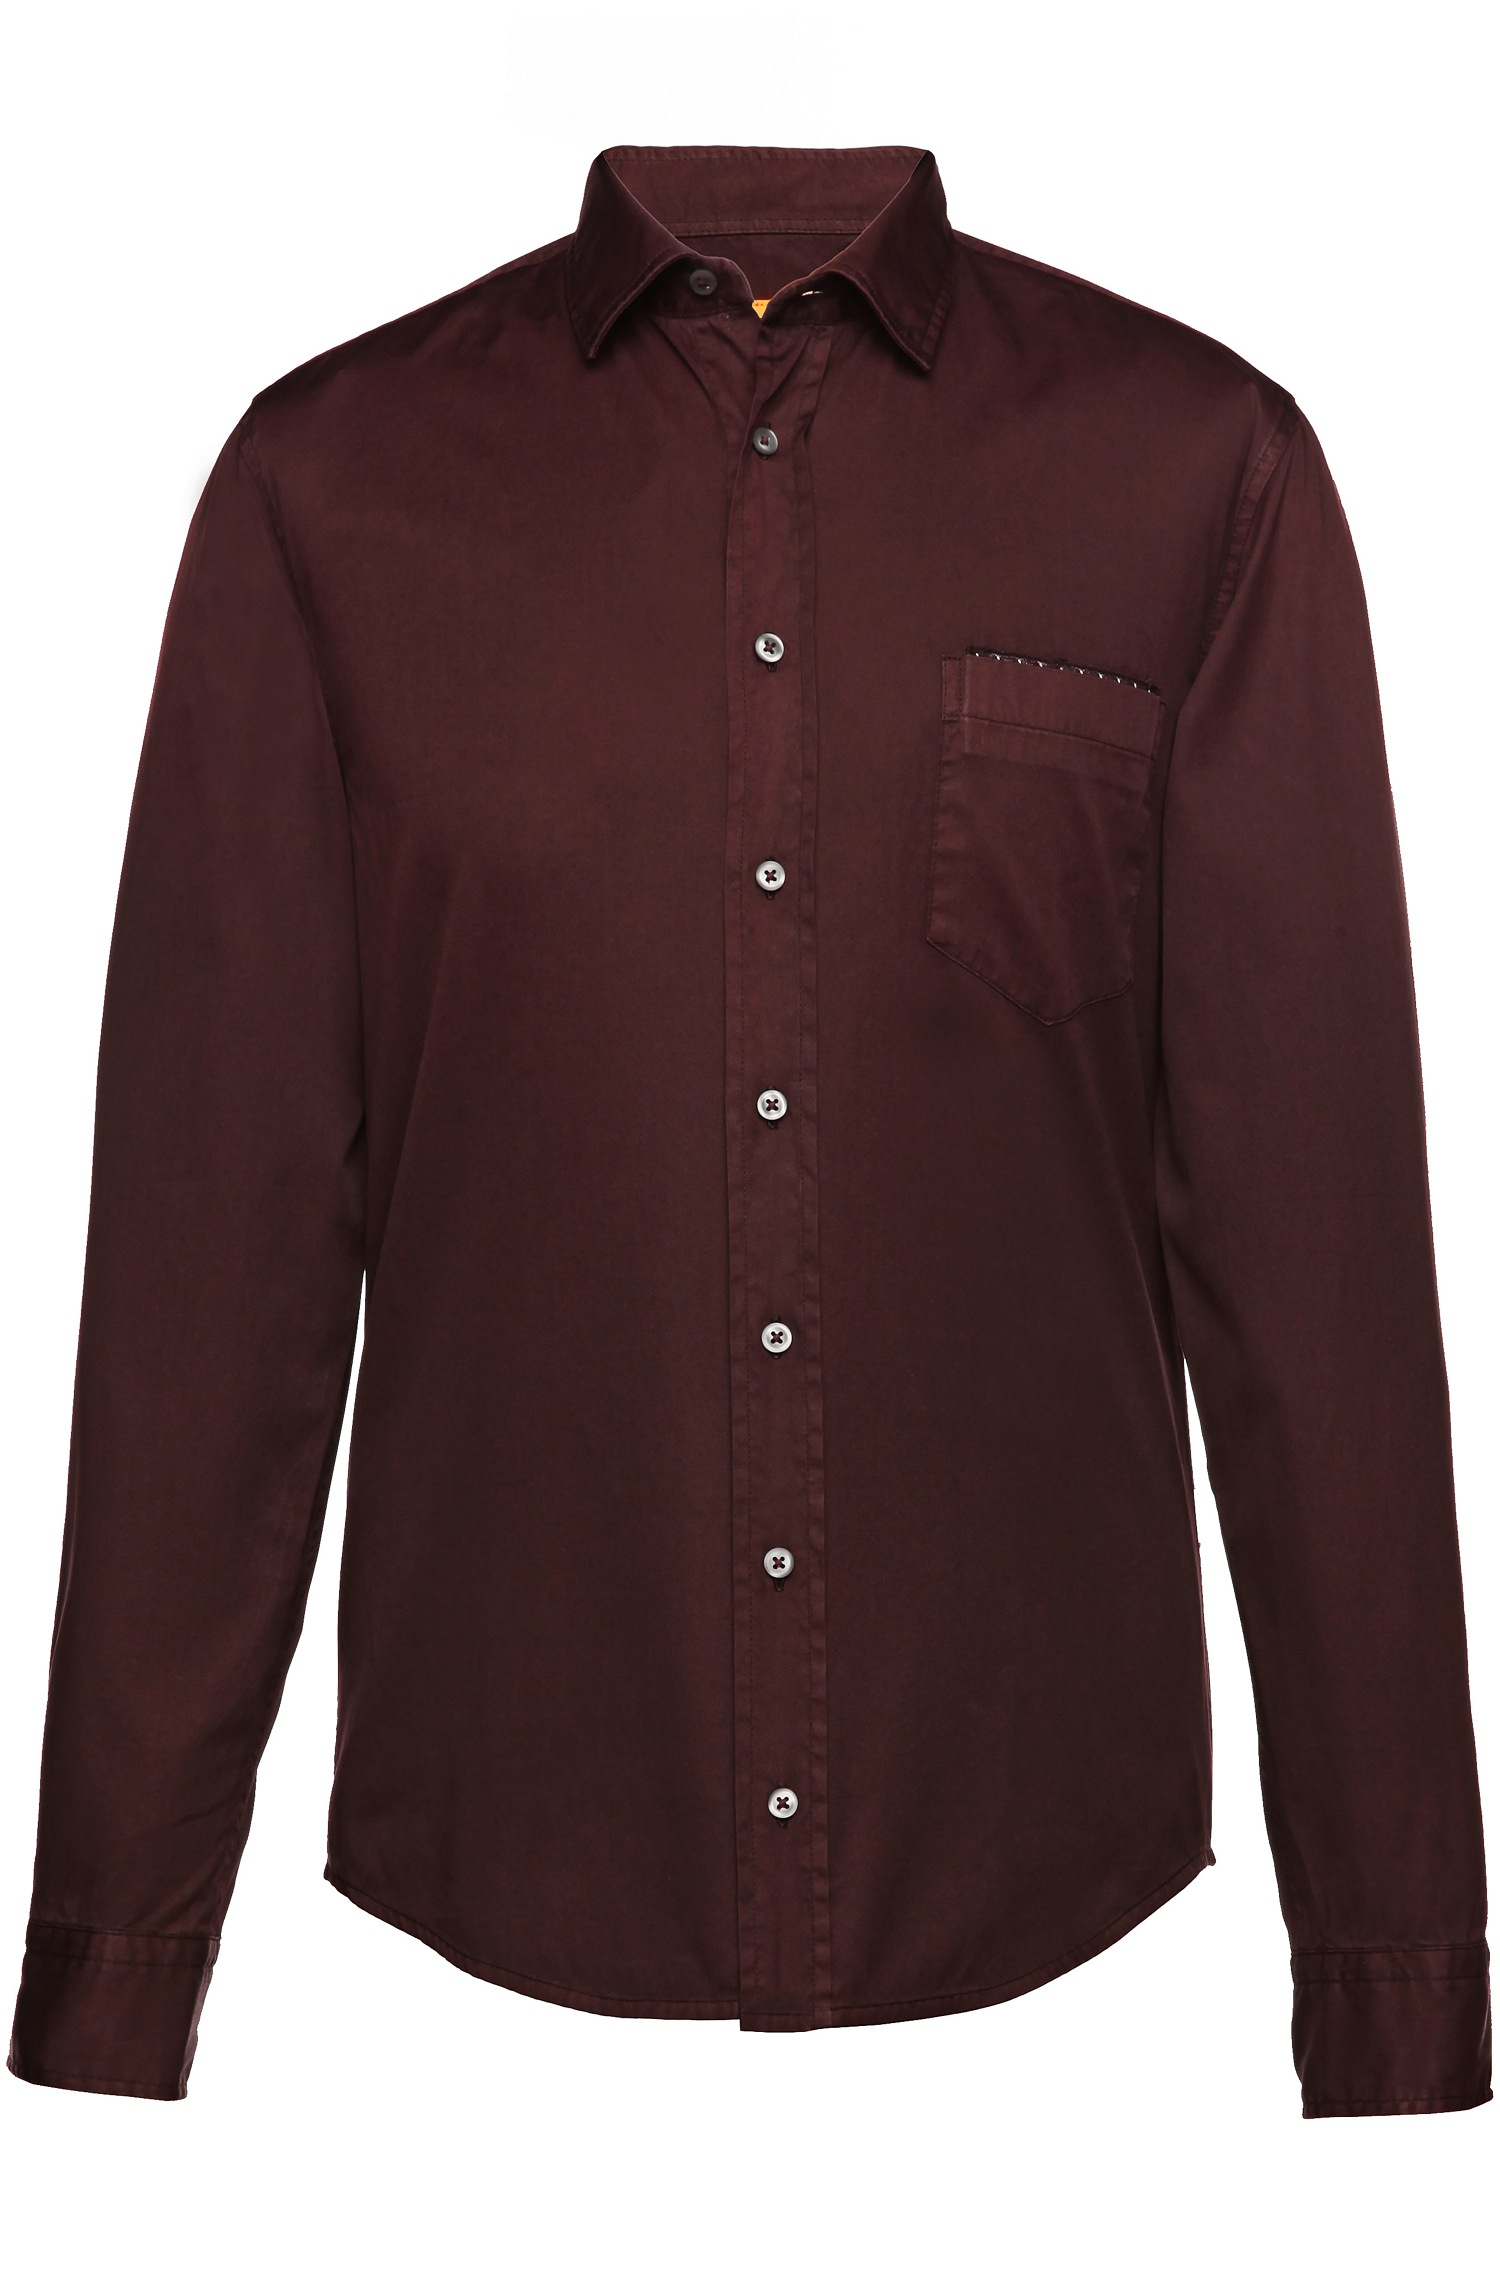 Find great deals on eBay for brown button down shirt. Shop with confidence.